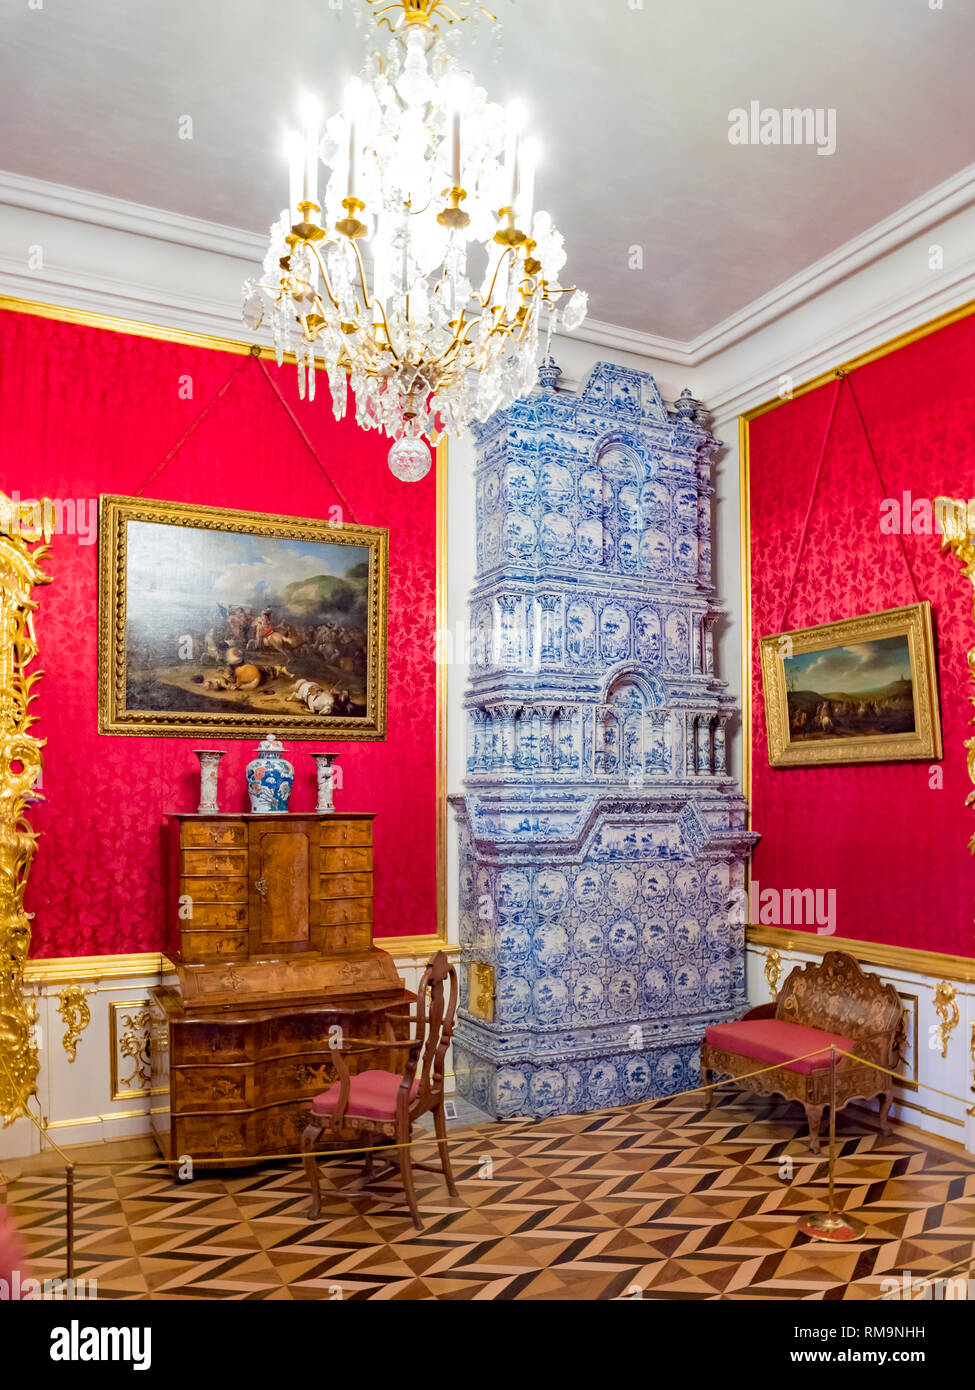 18 September 2018: St Petersburg, Russia - Room in the Peterhof Grand Palace with a ceramic tiled stove. - Stock Image